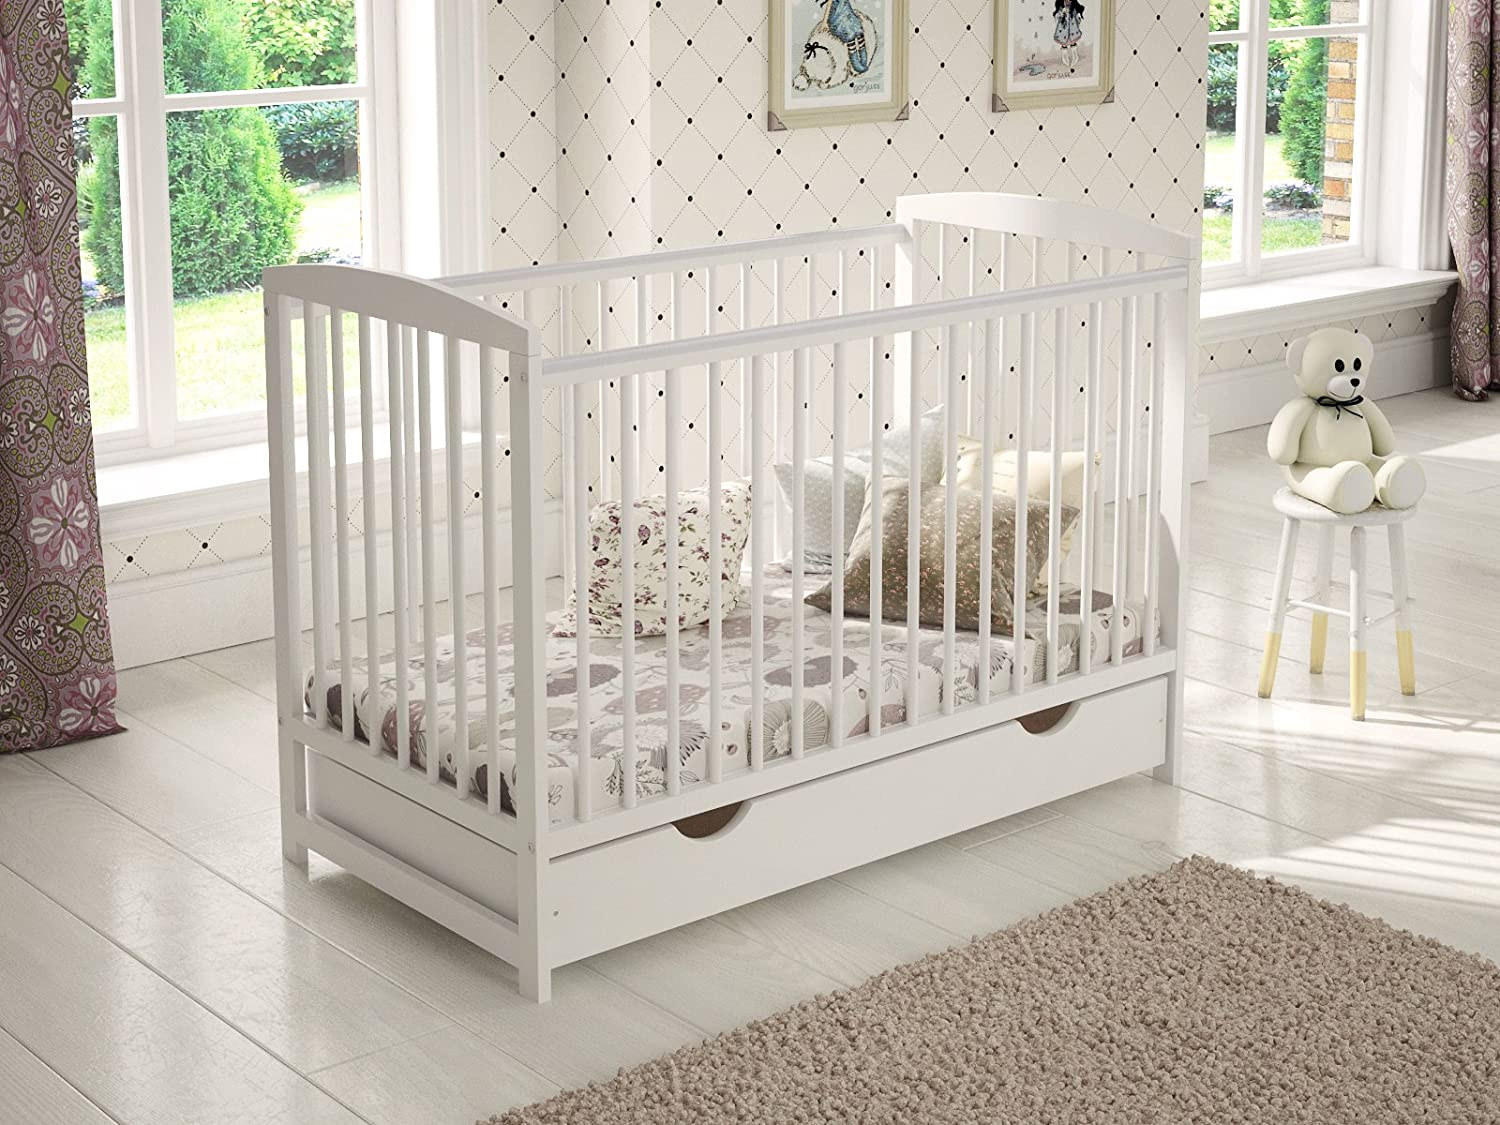 Grey Wooden Baby Cot with Drawer 120x60cm + Foam Mattress + Safety Wooden Barrier + Teething Rails loveforsleep